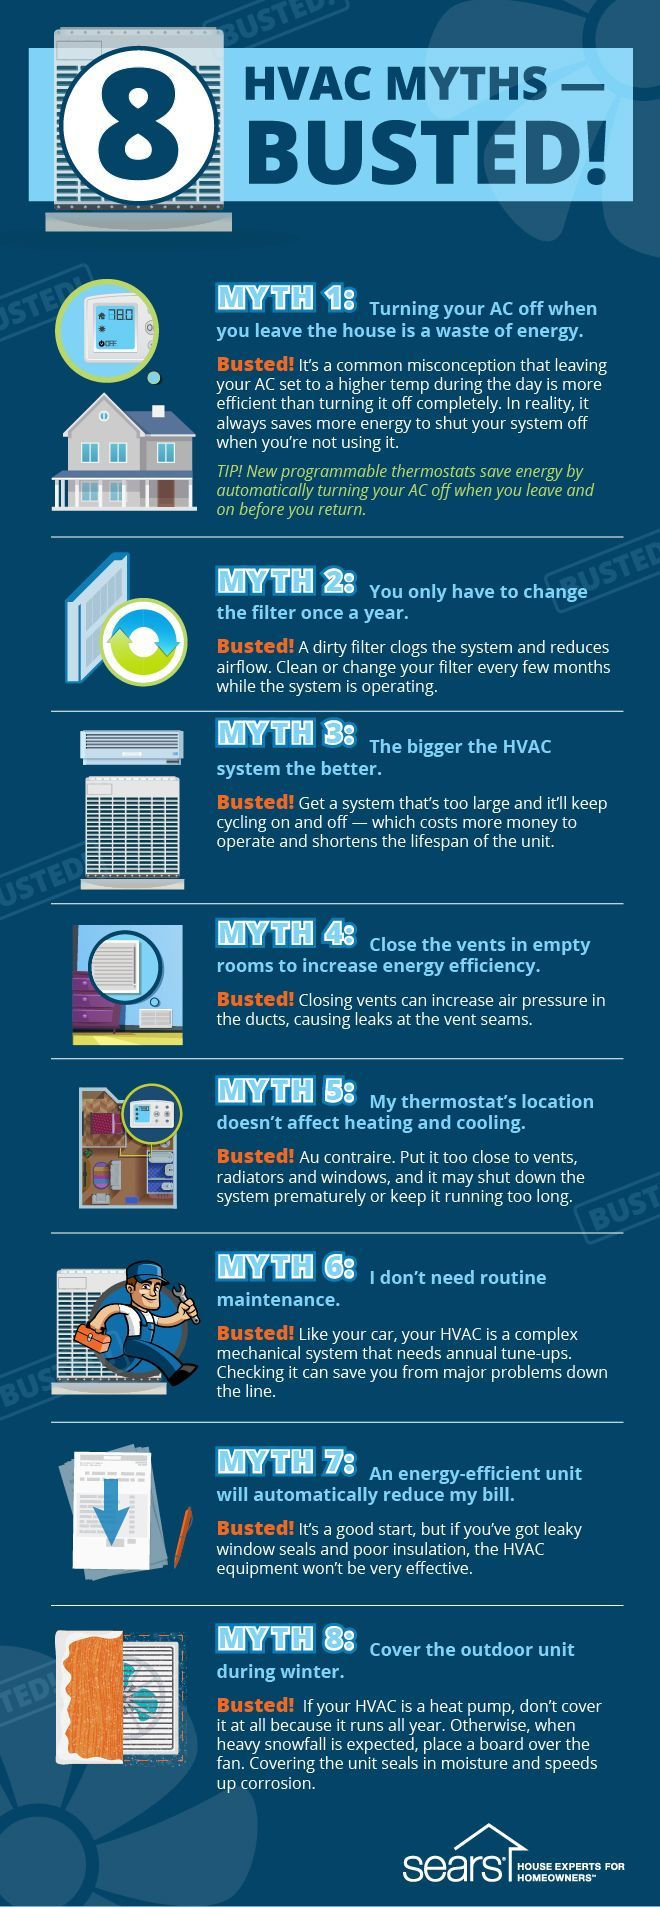 Check Out These Busted HVAC Myths & Avoid Furnace Freeze